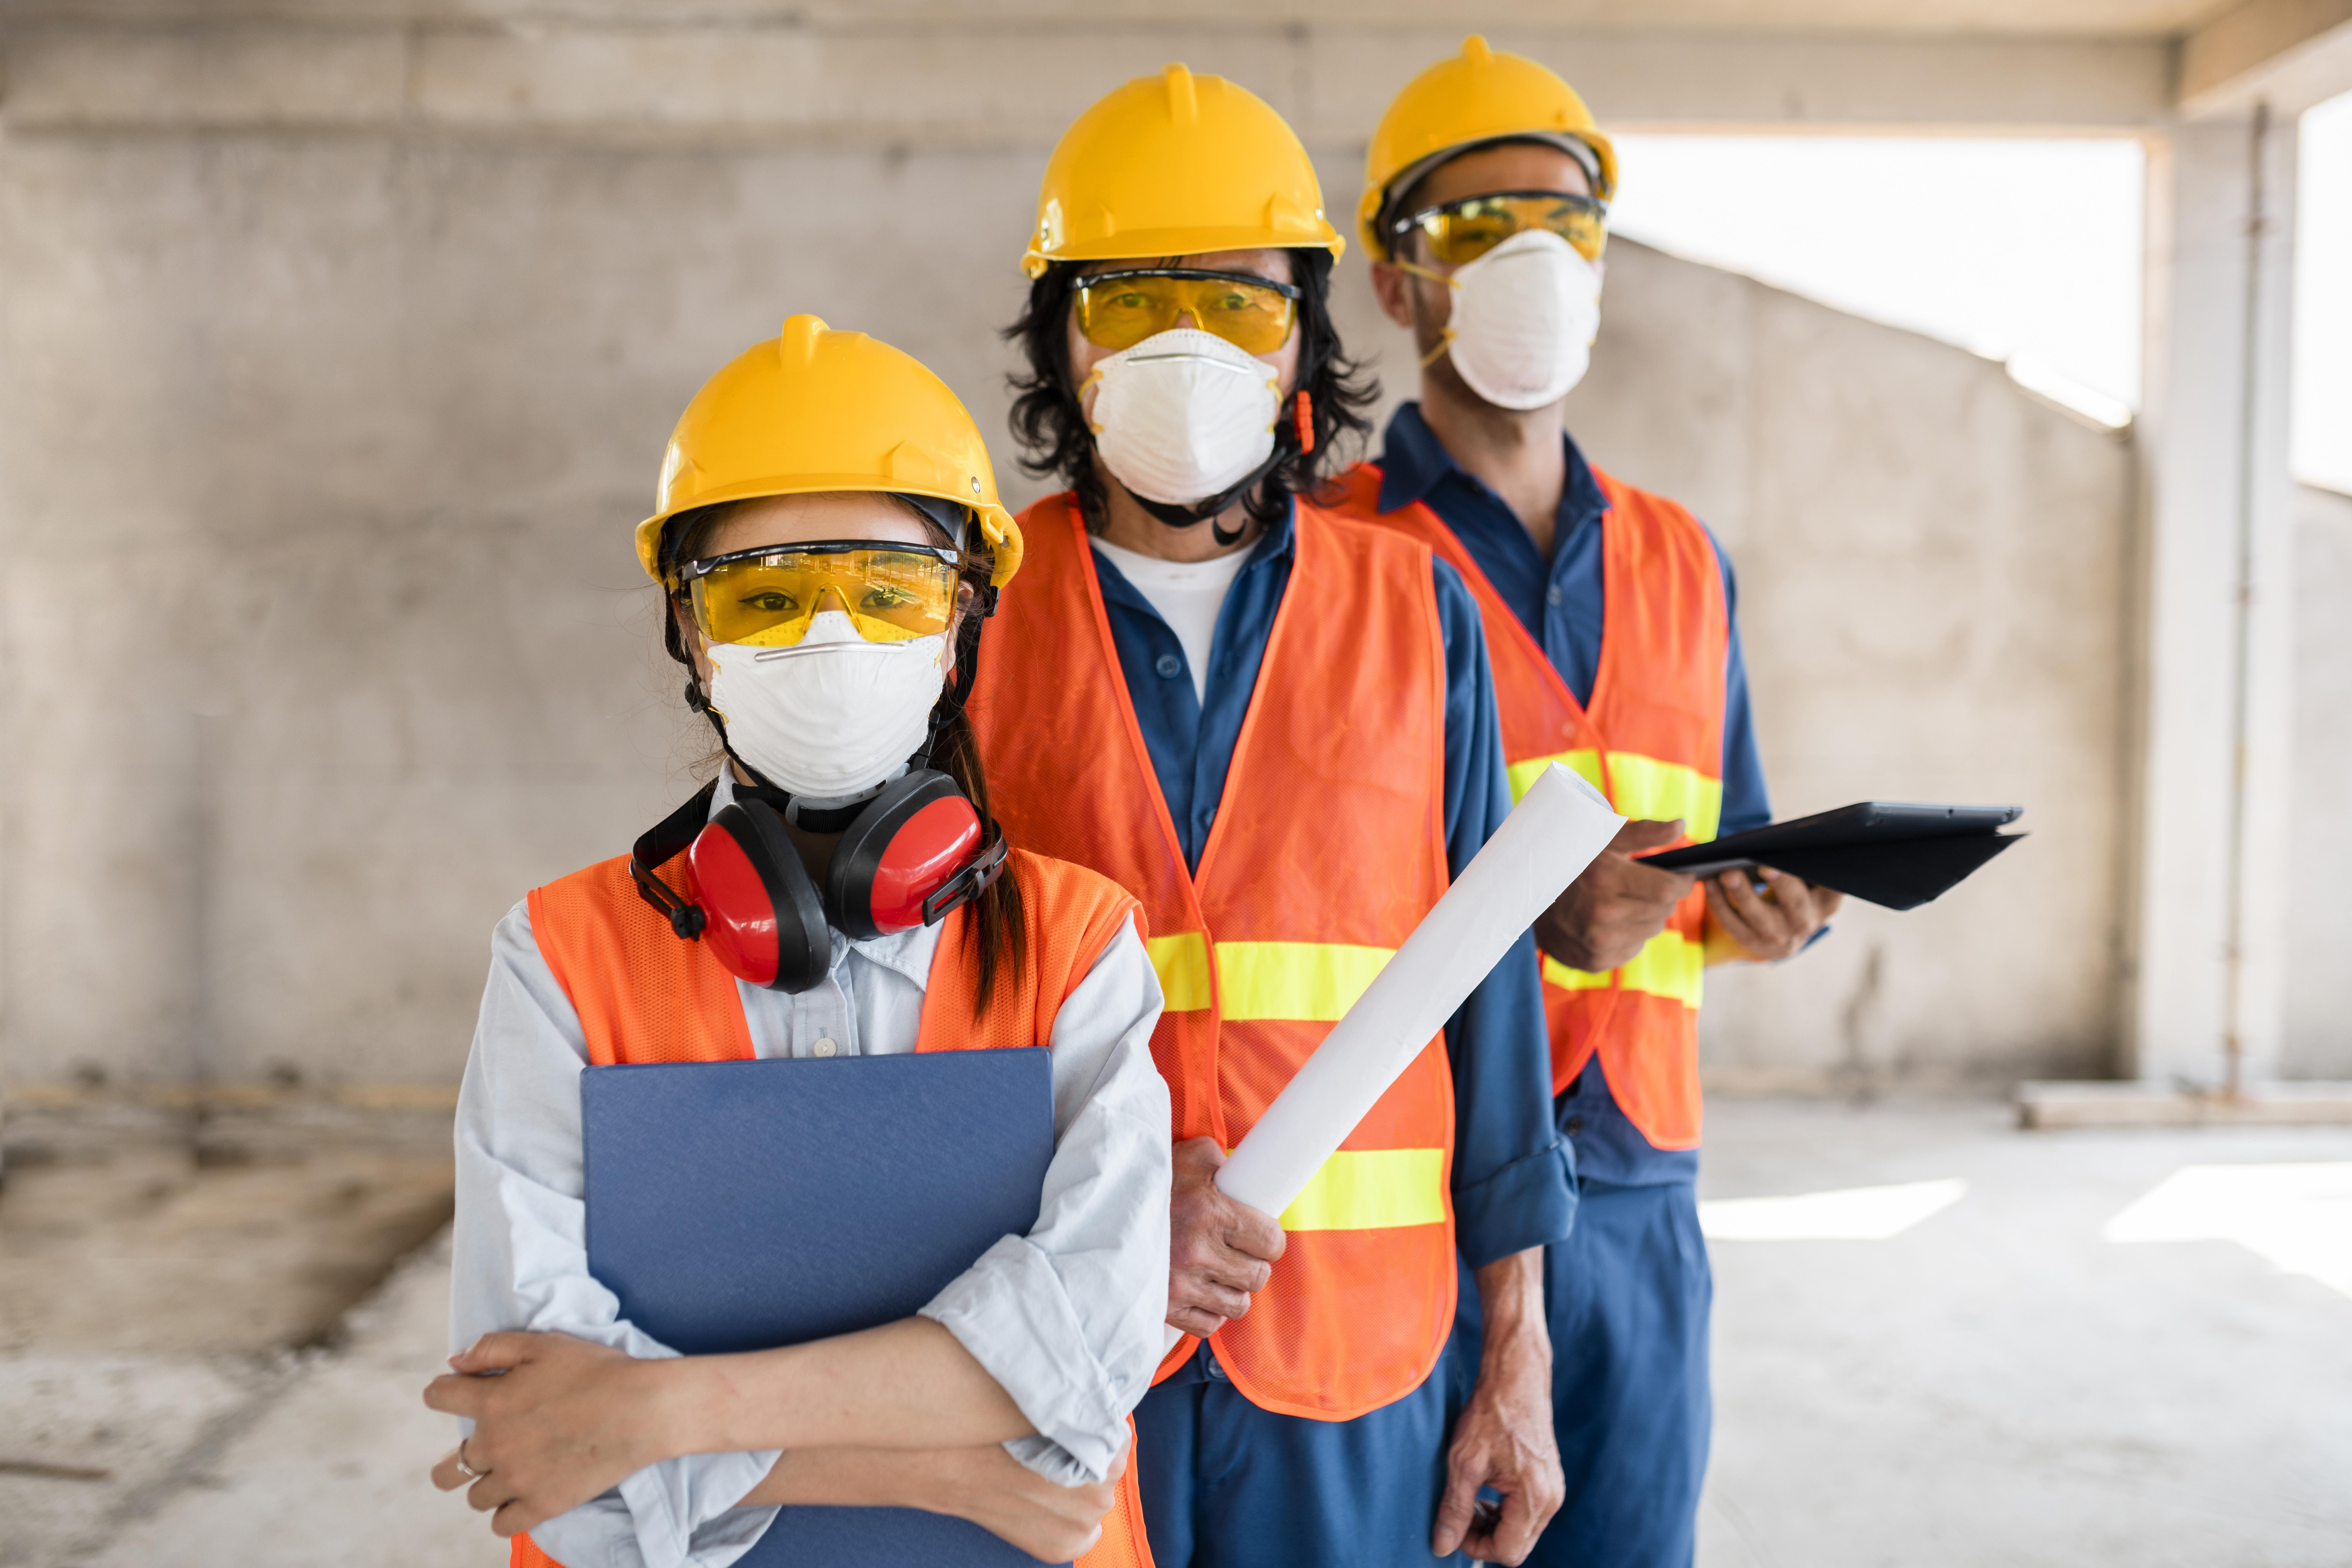 colleagues-with-safety-equipment-working-with-blueprints.jpg